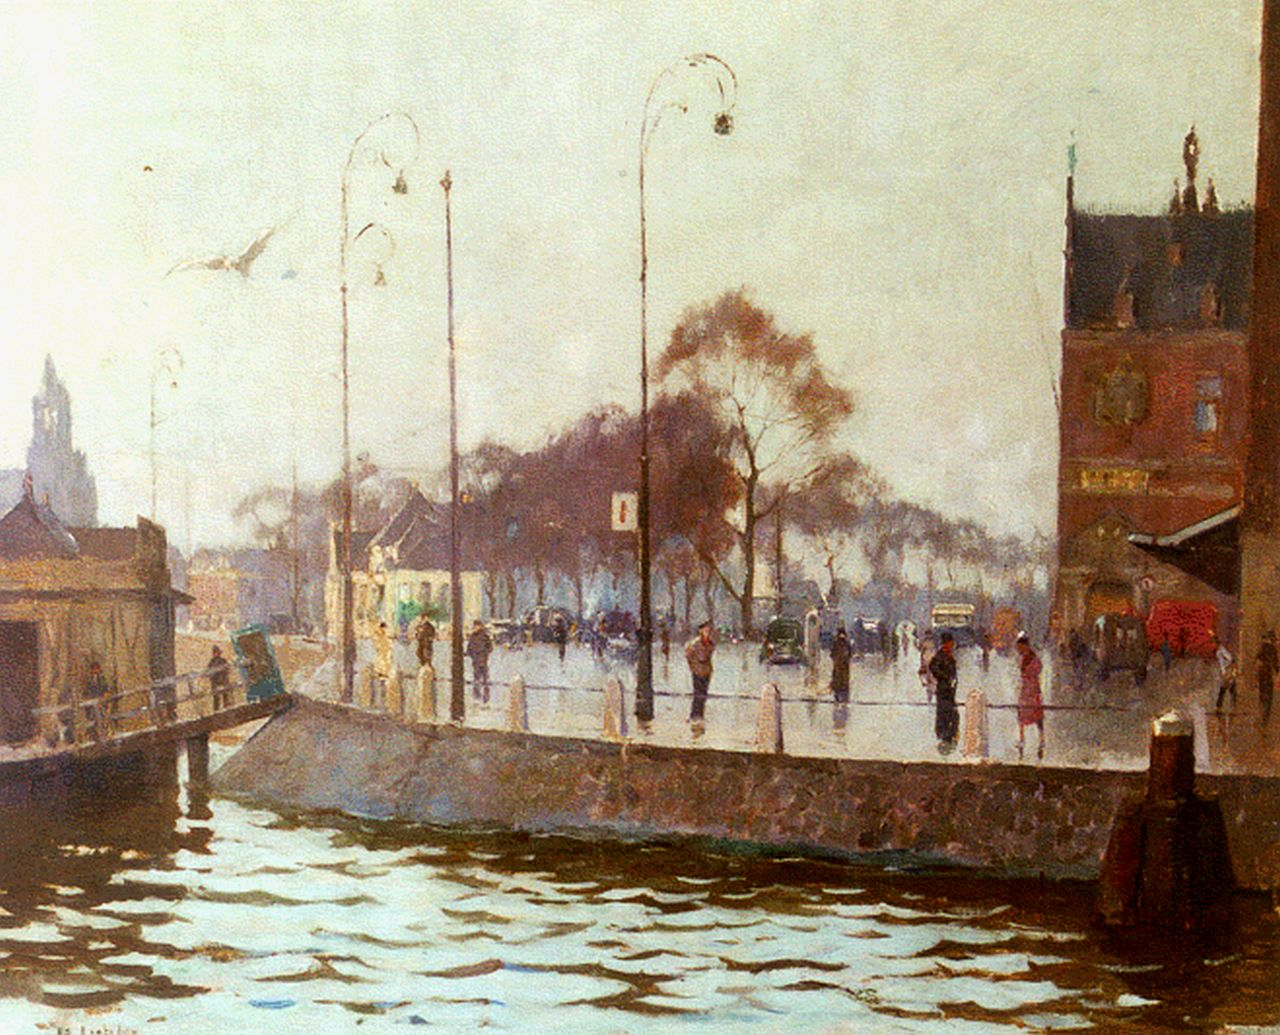 Ligtelijn E.J.  | Evert Jan Ligtelijn, View of the station square, Amsterdam, oil on canvas 48.7 x 60.3 cm, signed l.l. and on the reverse